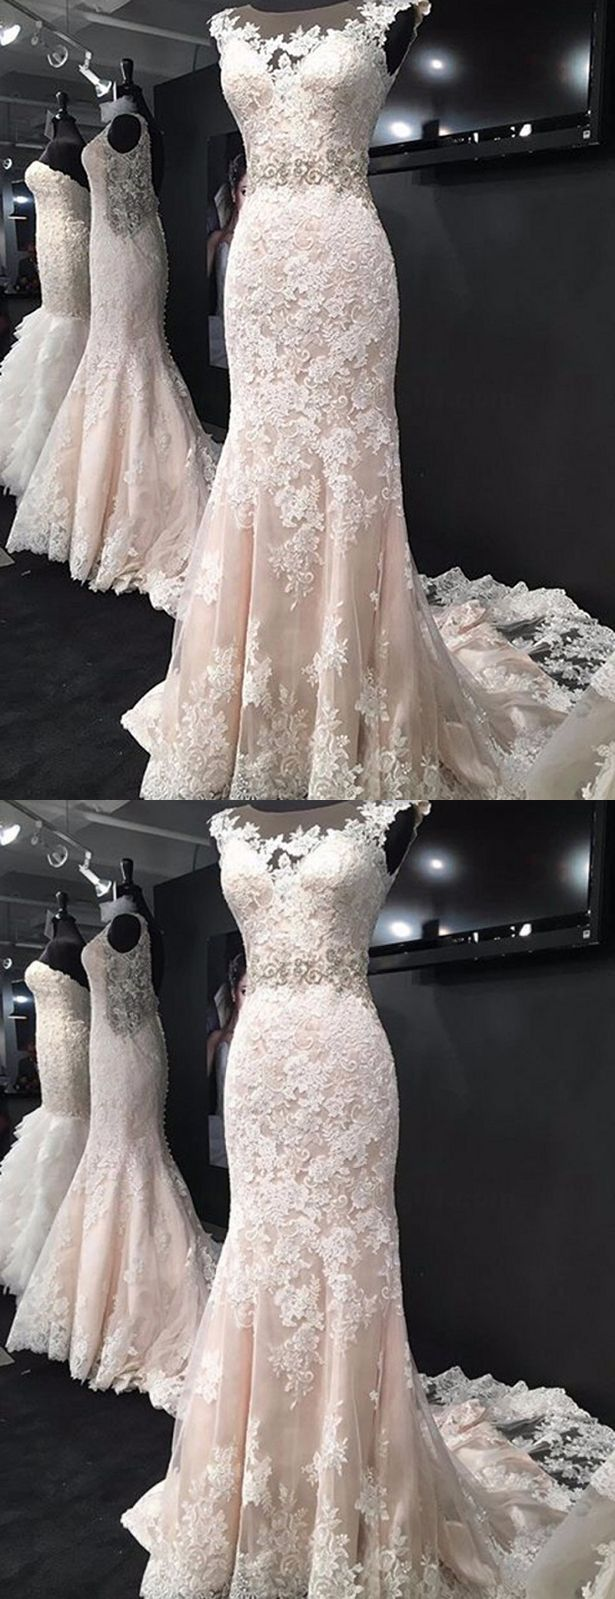 elegant scoop neck wedding dresses, sleeveless sweep train classic bride dresses, appliques beading shiny dresses for wedding party dresses, mermaid Wedding dresses